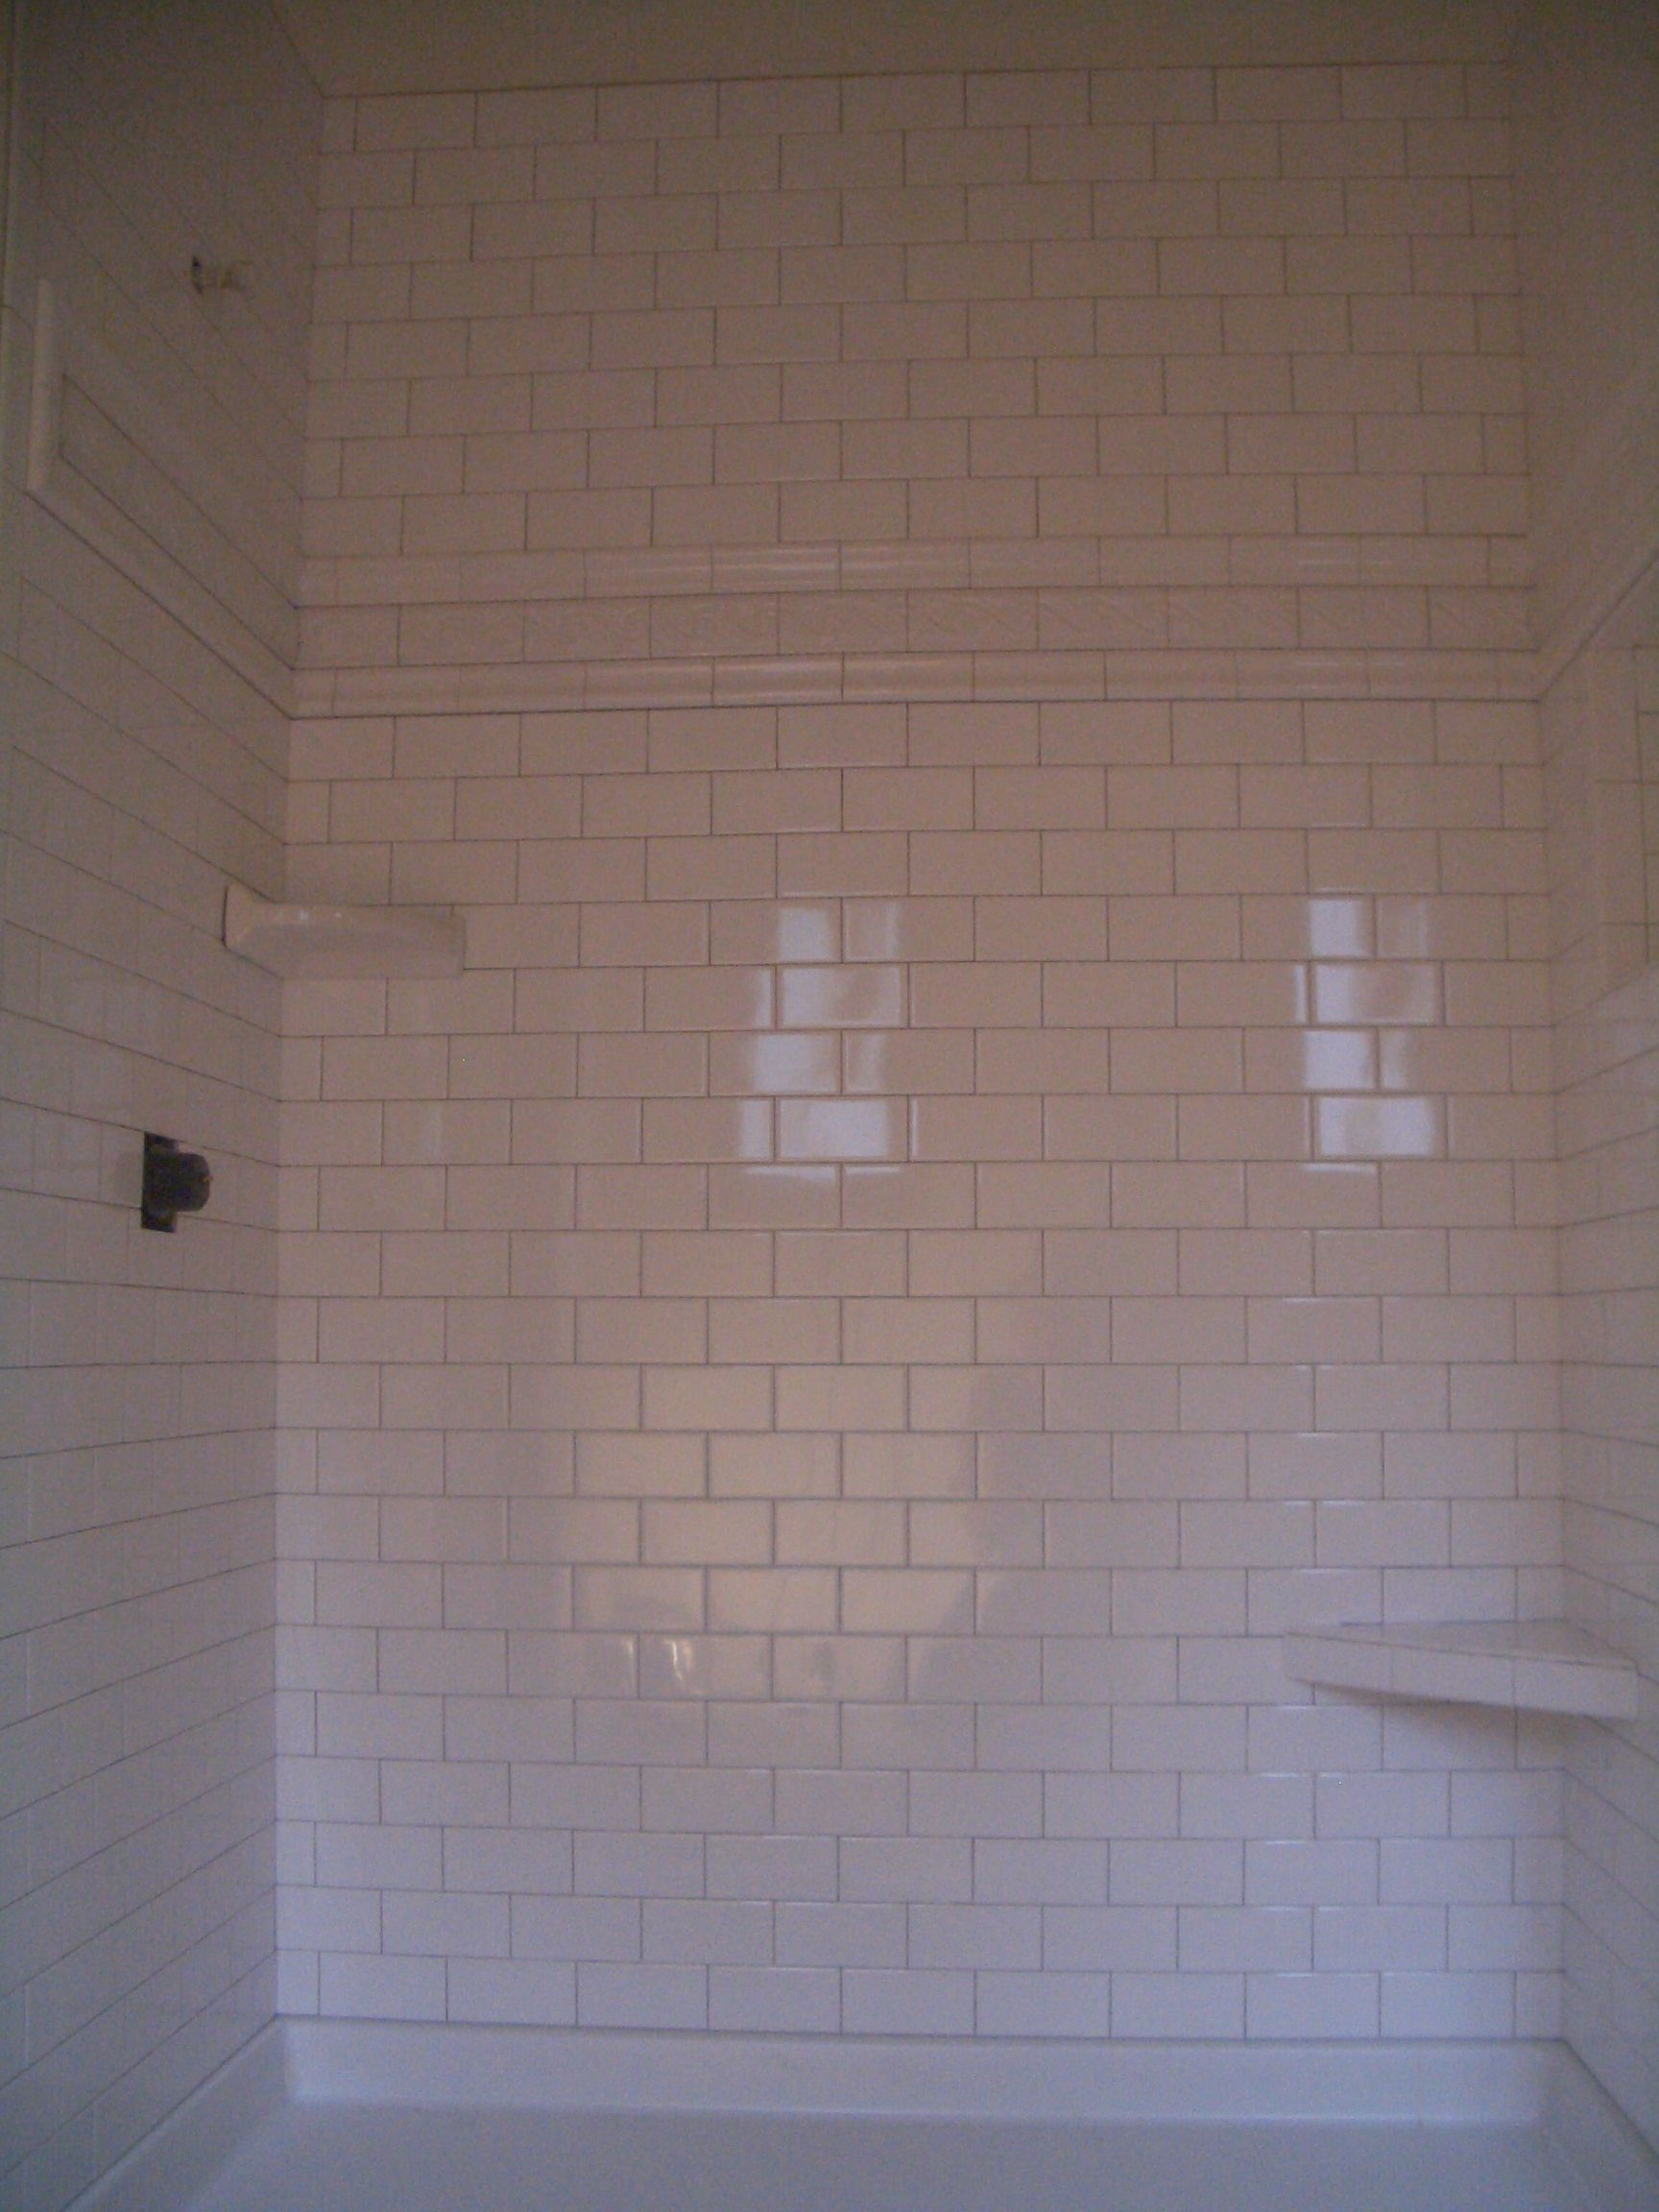 Tiled Shower Recently Finished A Shower With 3 X 6 Inch Ceramic Subway Tiles I Showers